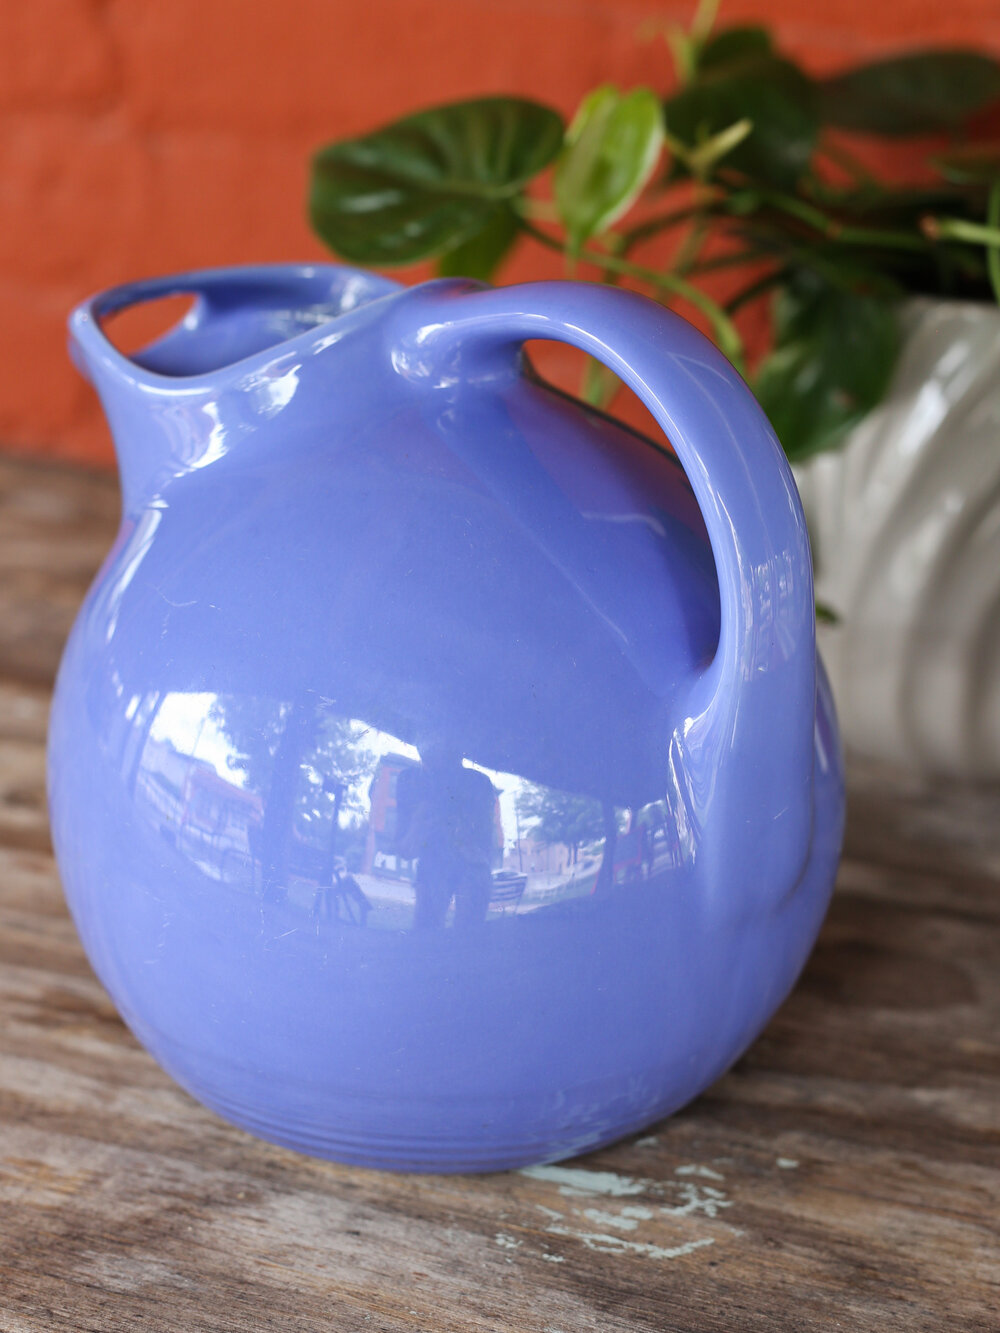 Space Farms Sussex NJ Vintage Small Pitcher